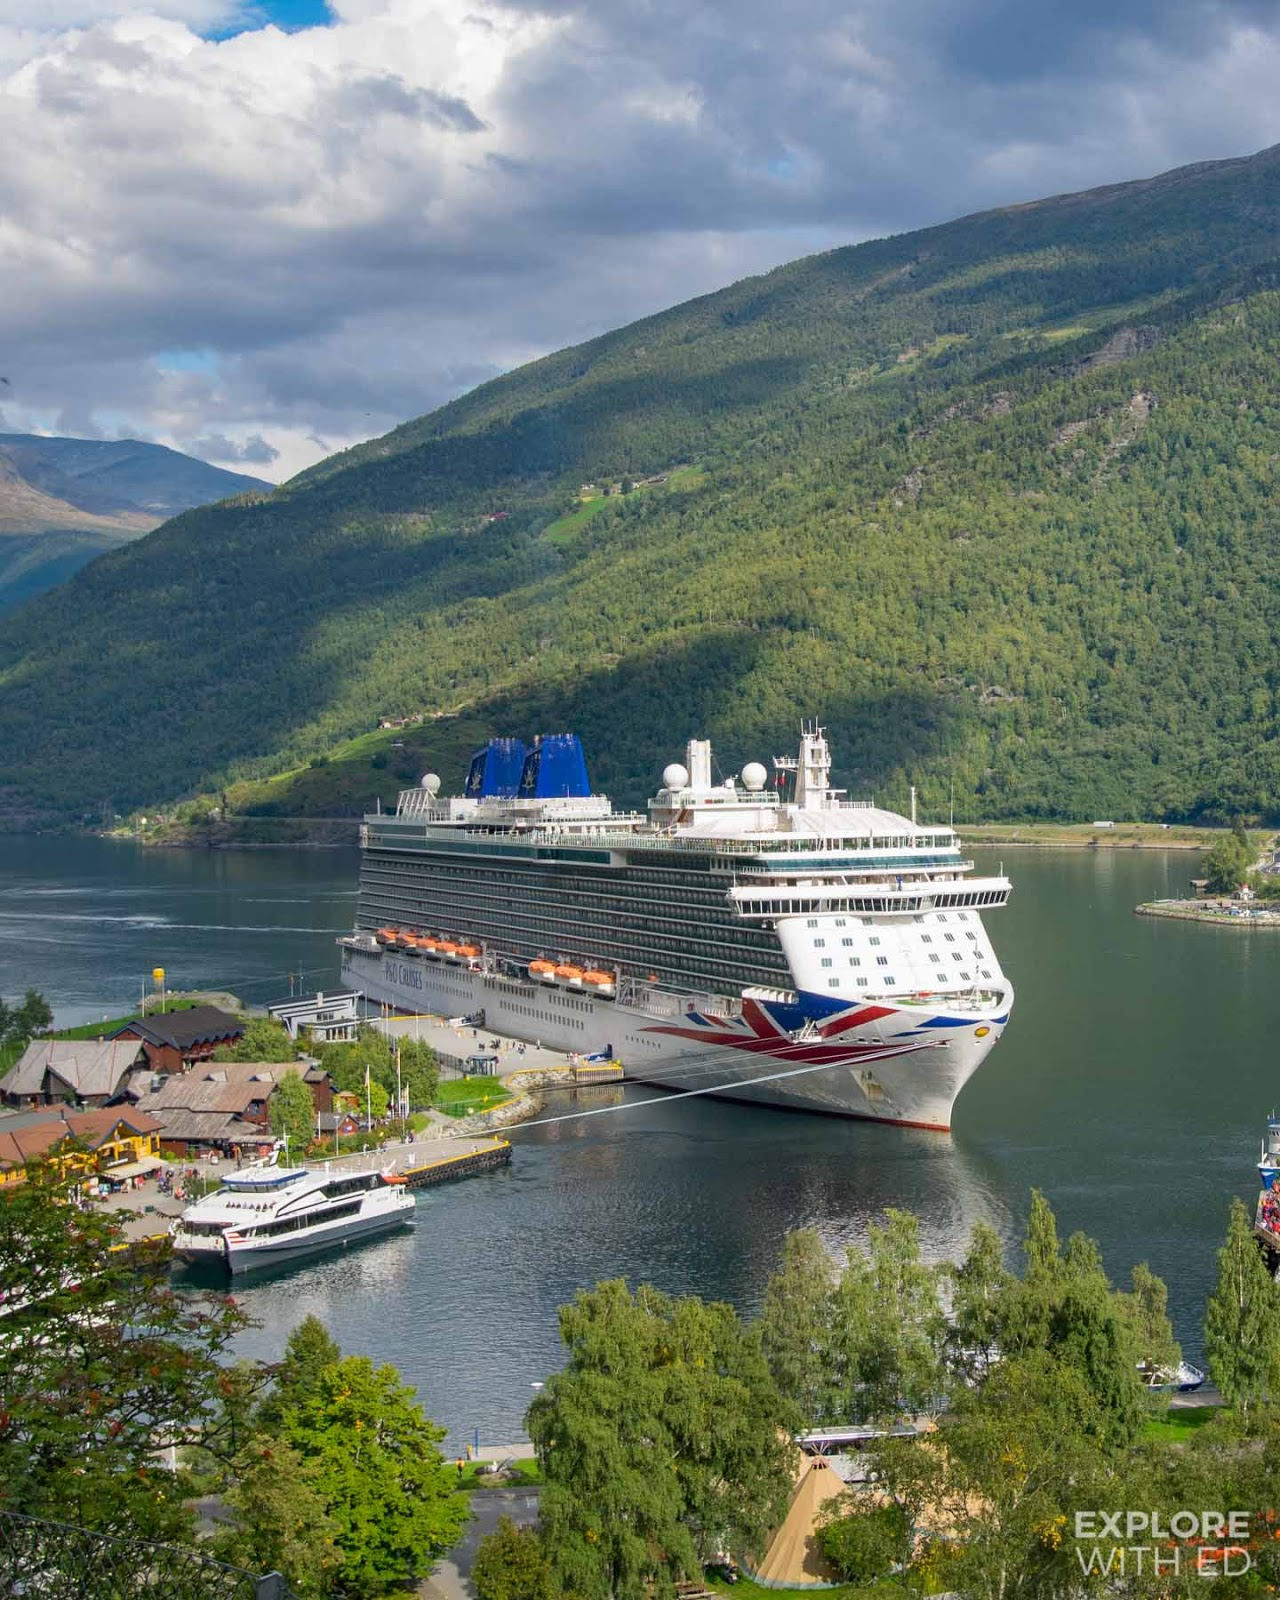 P&O Cruises Britannia docked in Flam, Norway